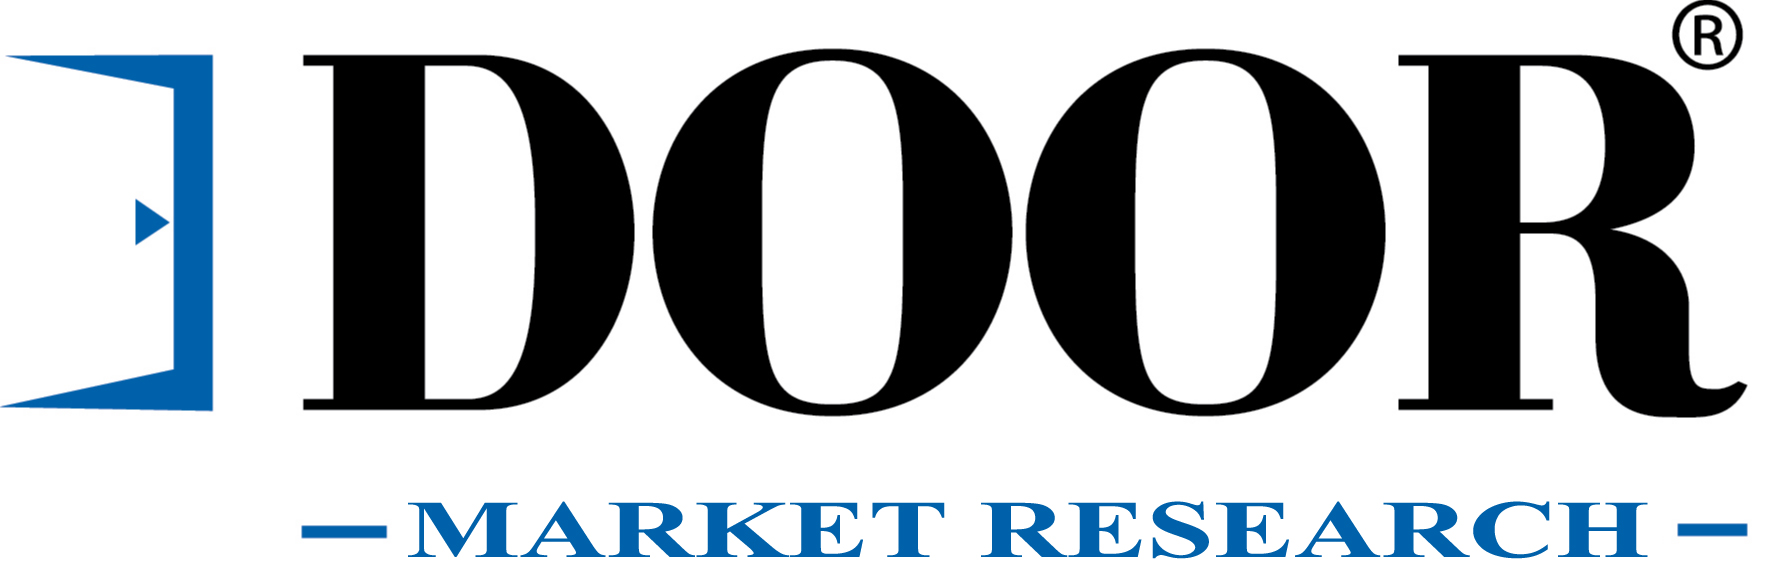 DOOR LOGO_MARKET_RESEARCH.jpg